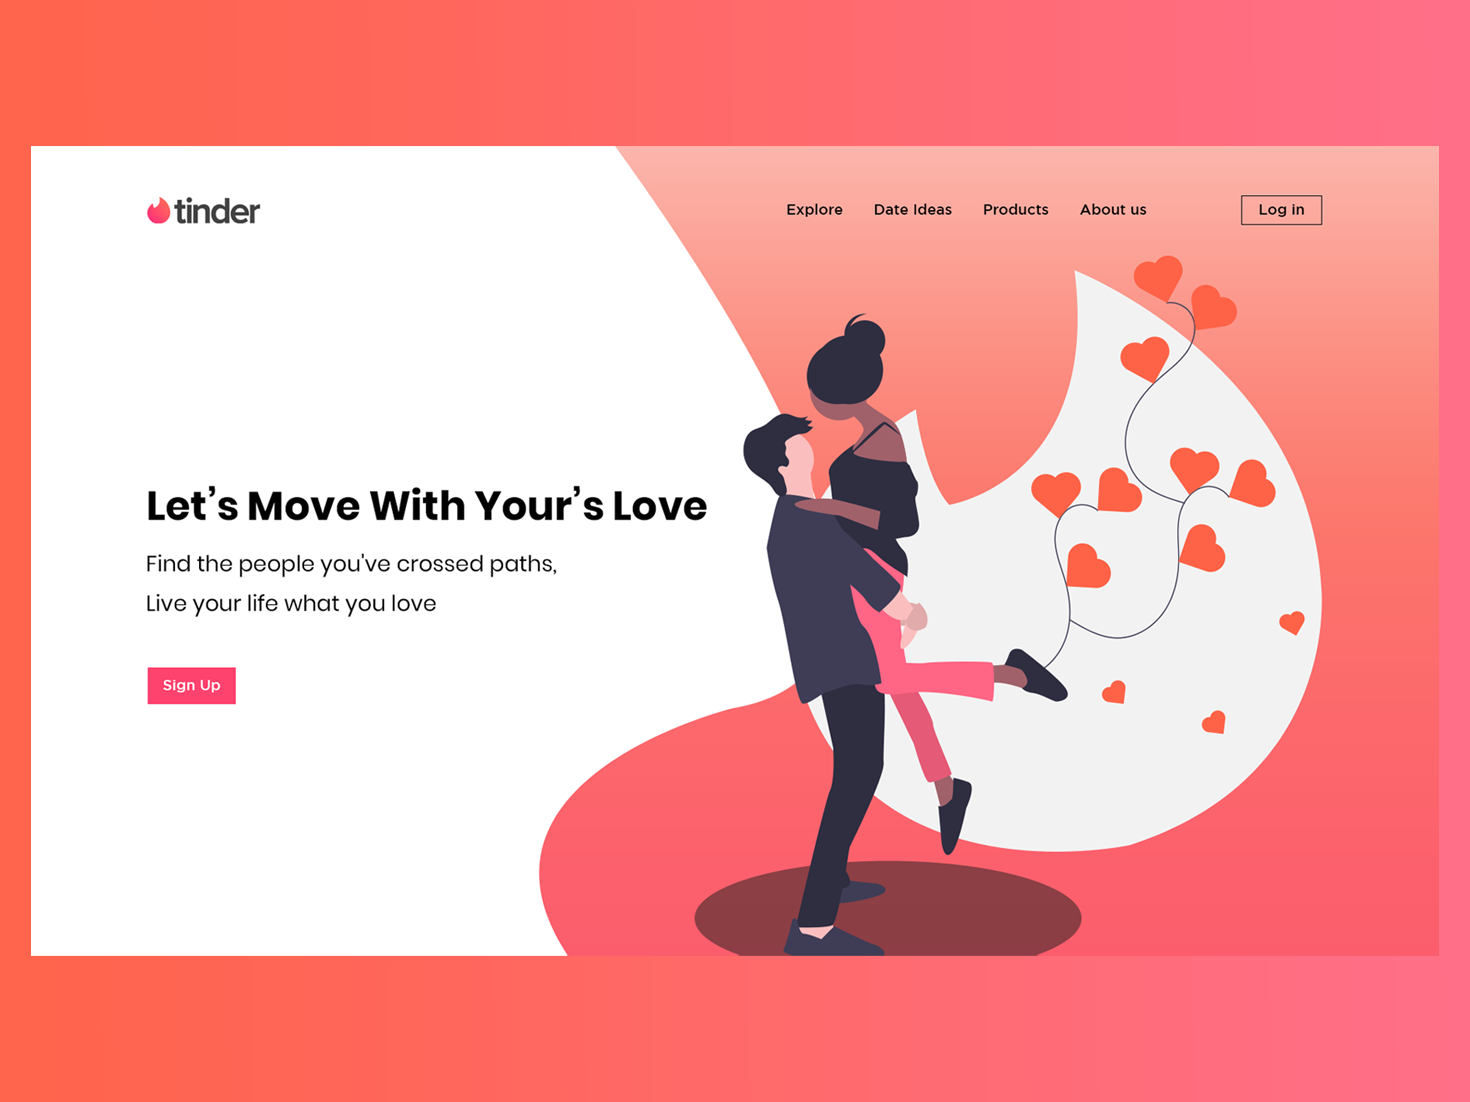 Tinder _ Landing  Page (Dating Web App) website web  design ux landing page interaction design graphic design tinder illustration flat ui colourfull illustraion dating website web design branding datingapp